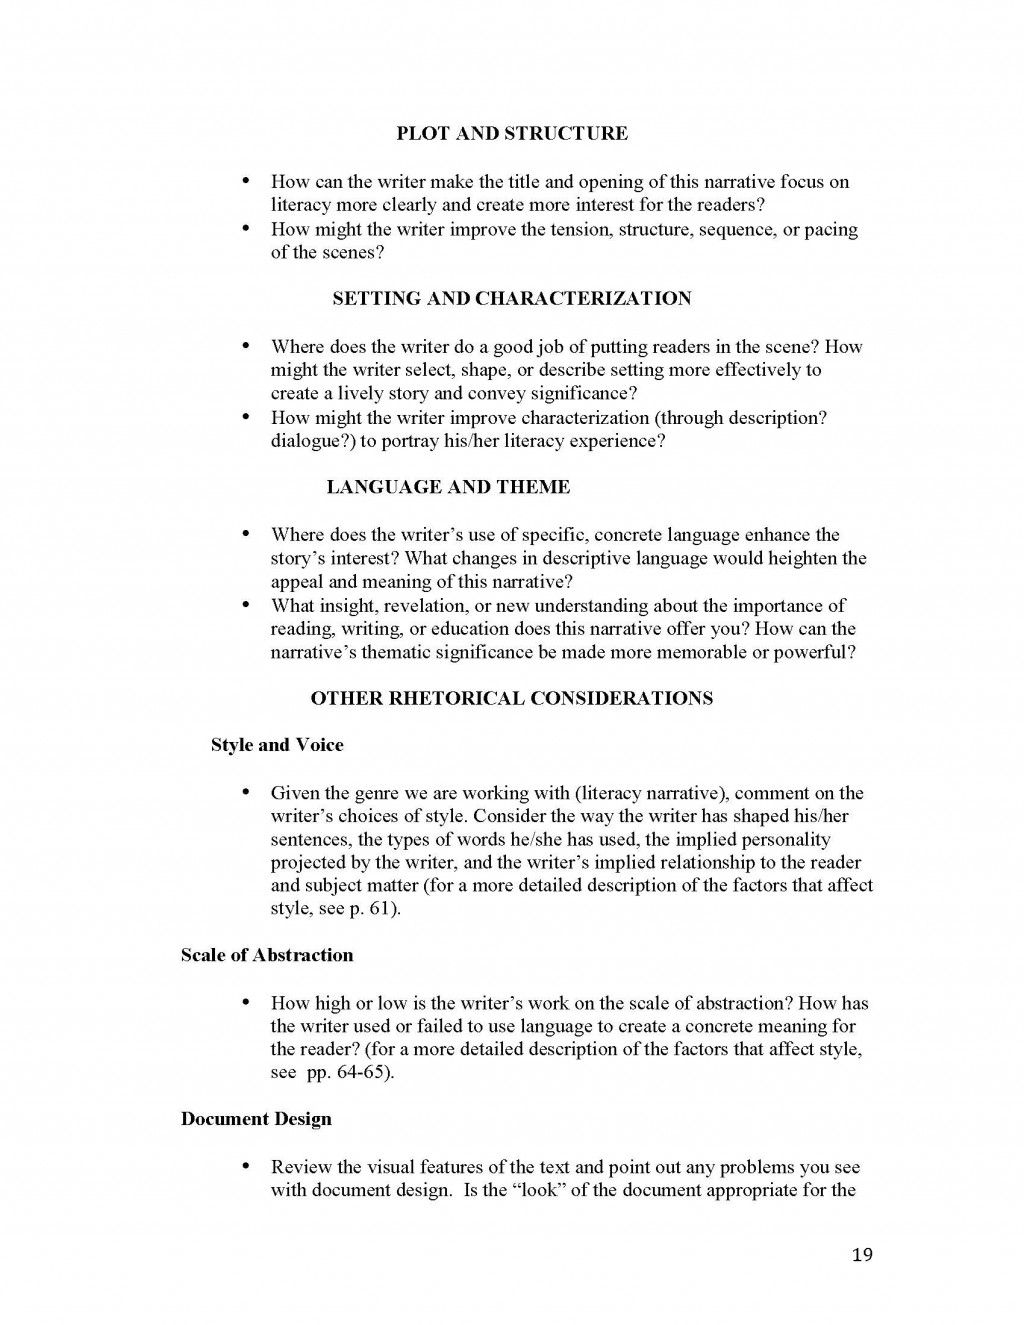 011 Essay Example Unit 1 Literacy Narrative Instructor Copy Page 19 Wonderful Outline College Template Personal Examples Large